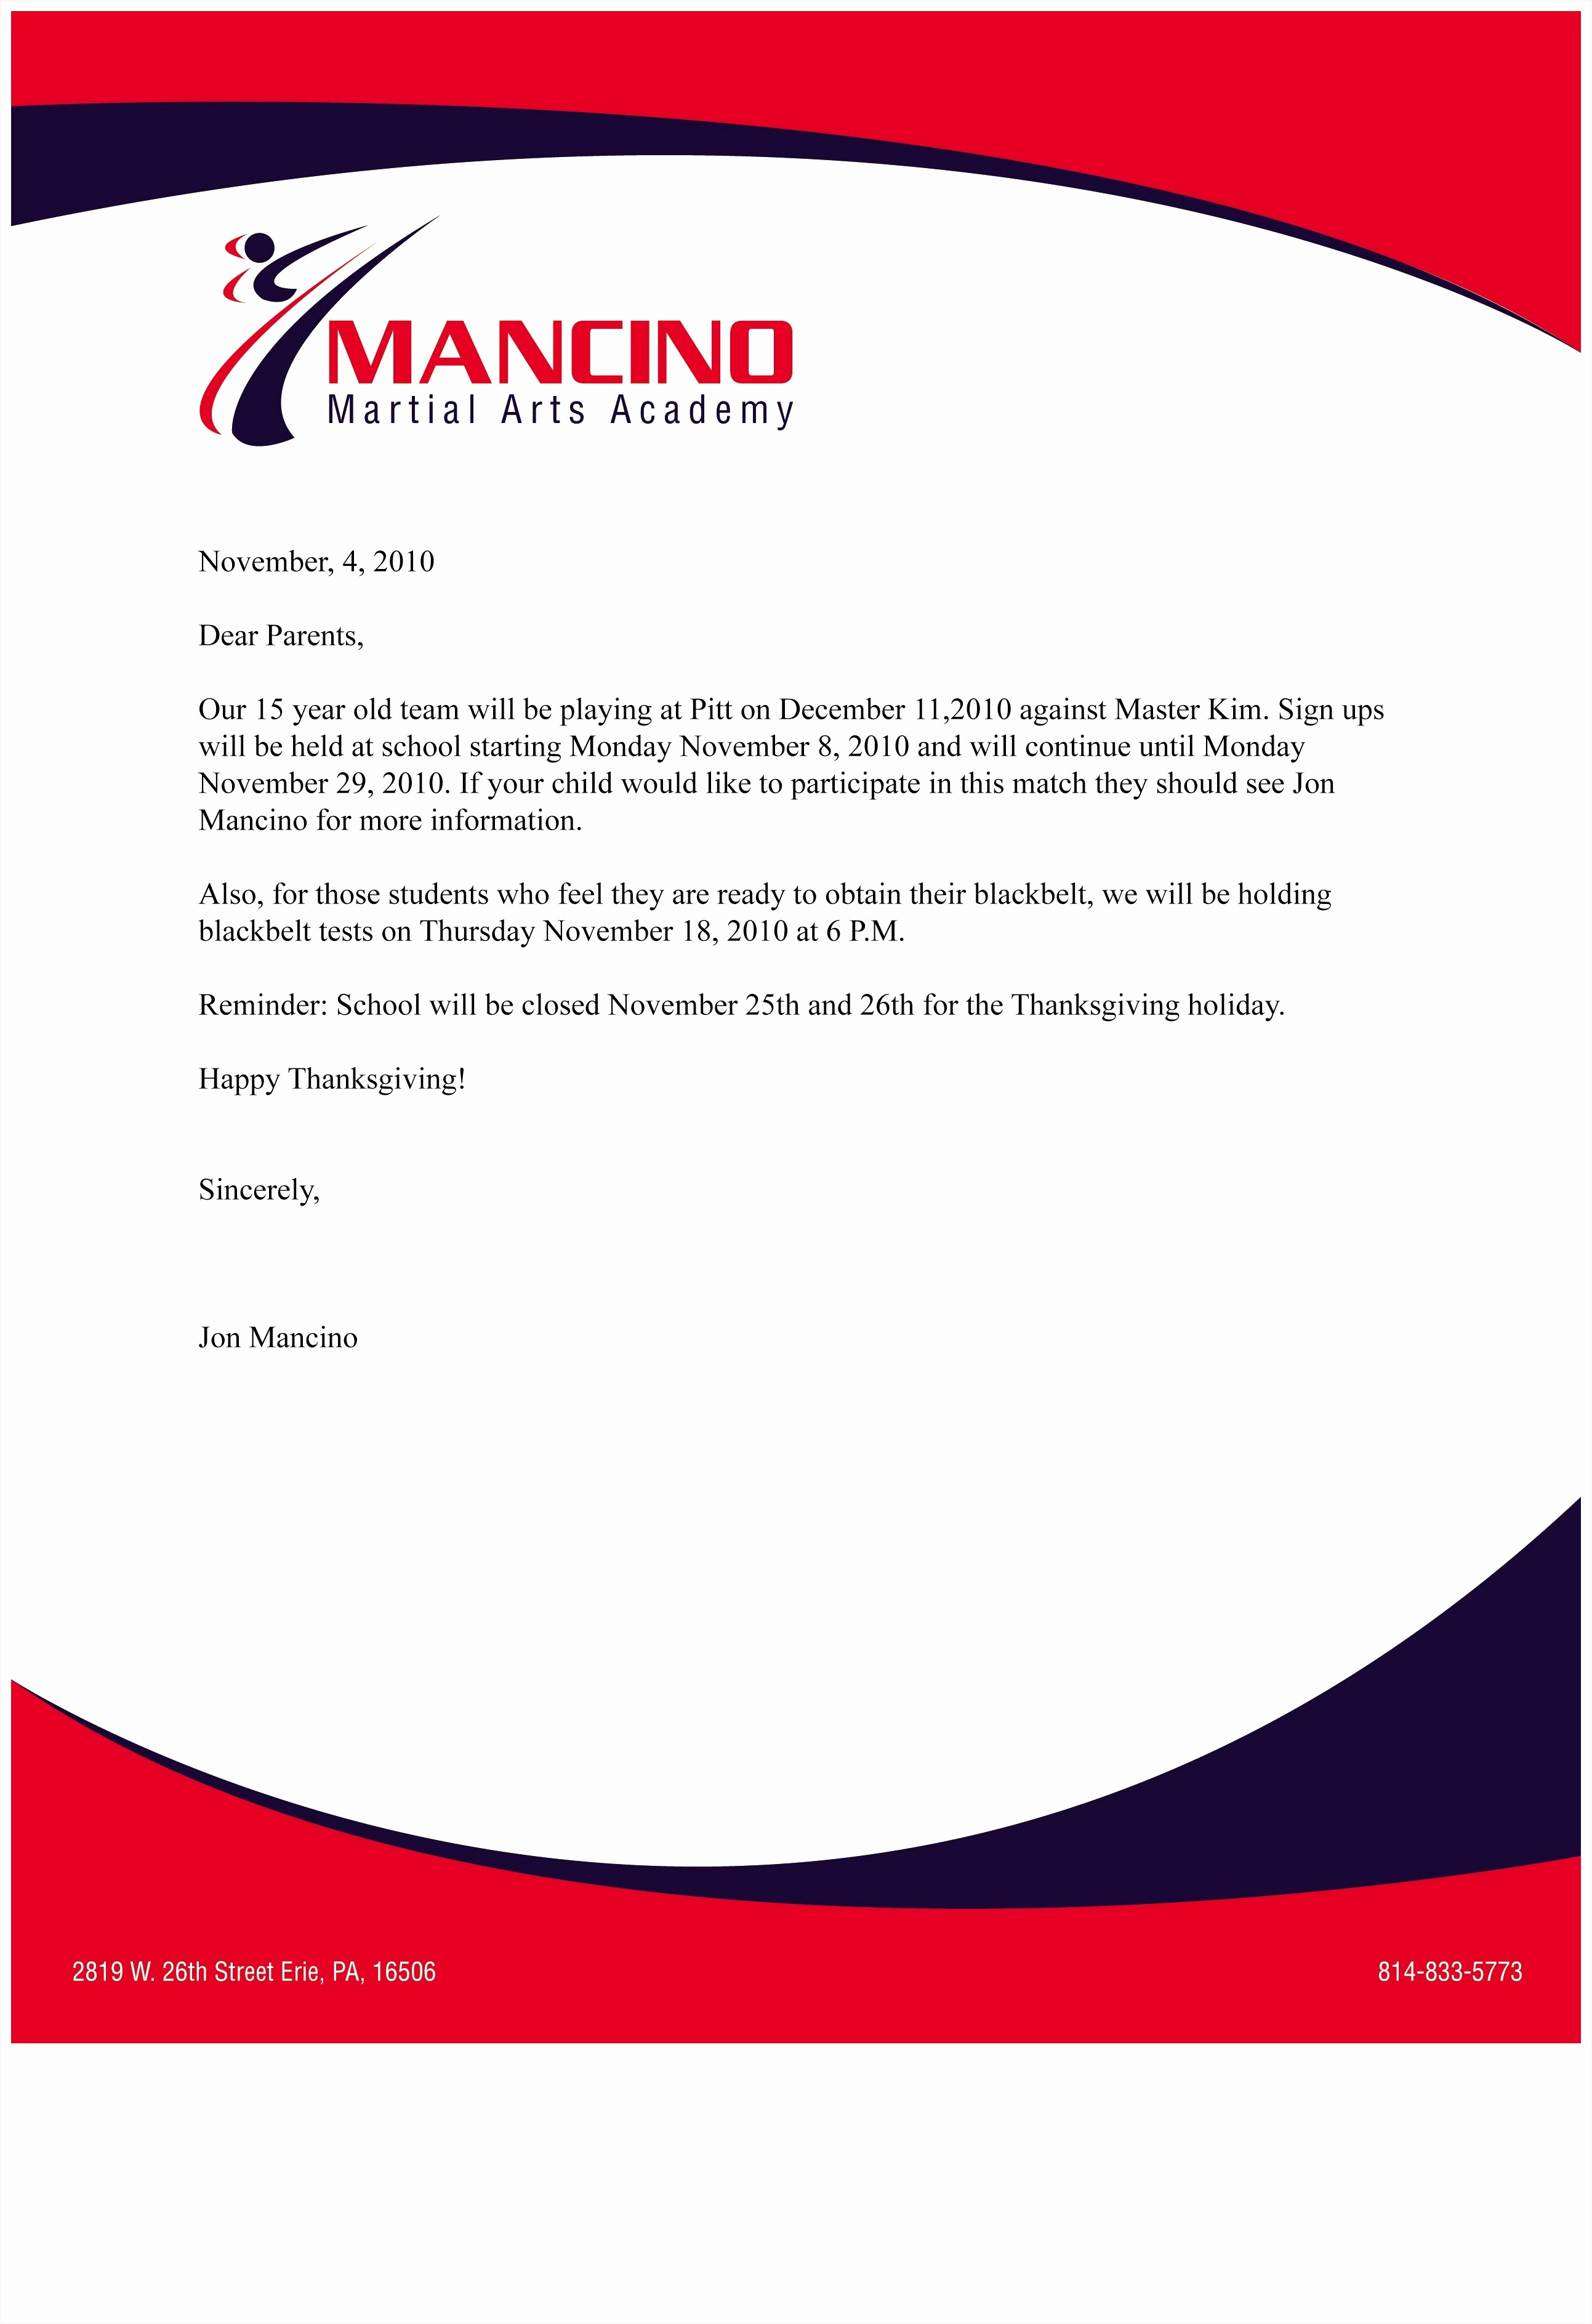 business letterhead format example